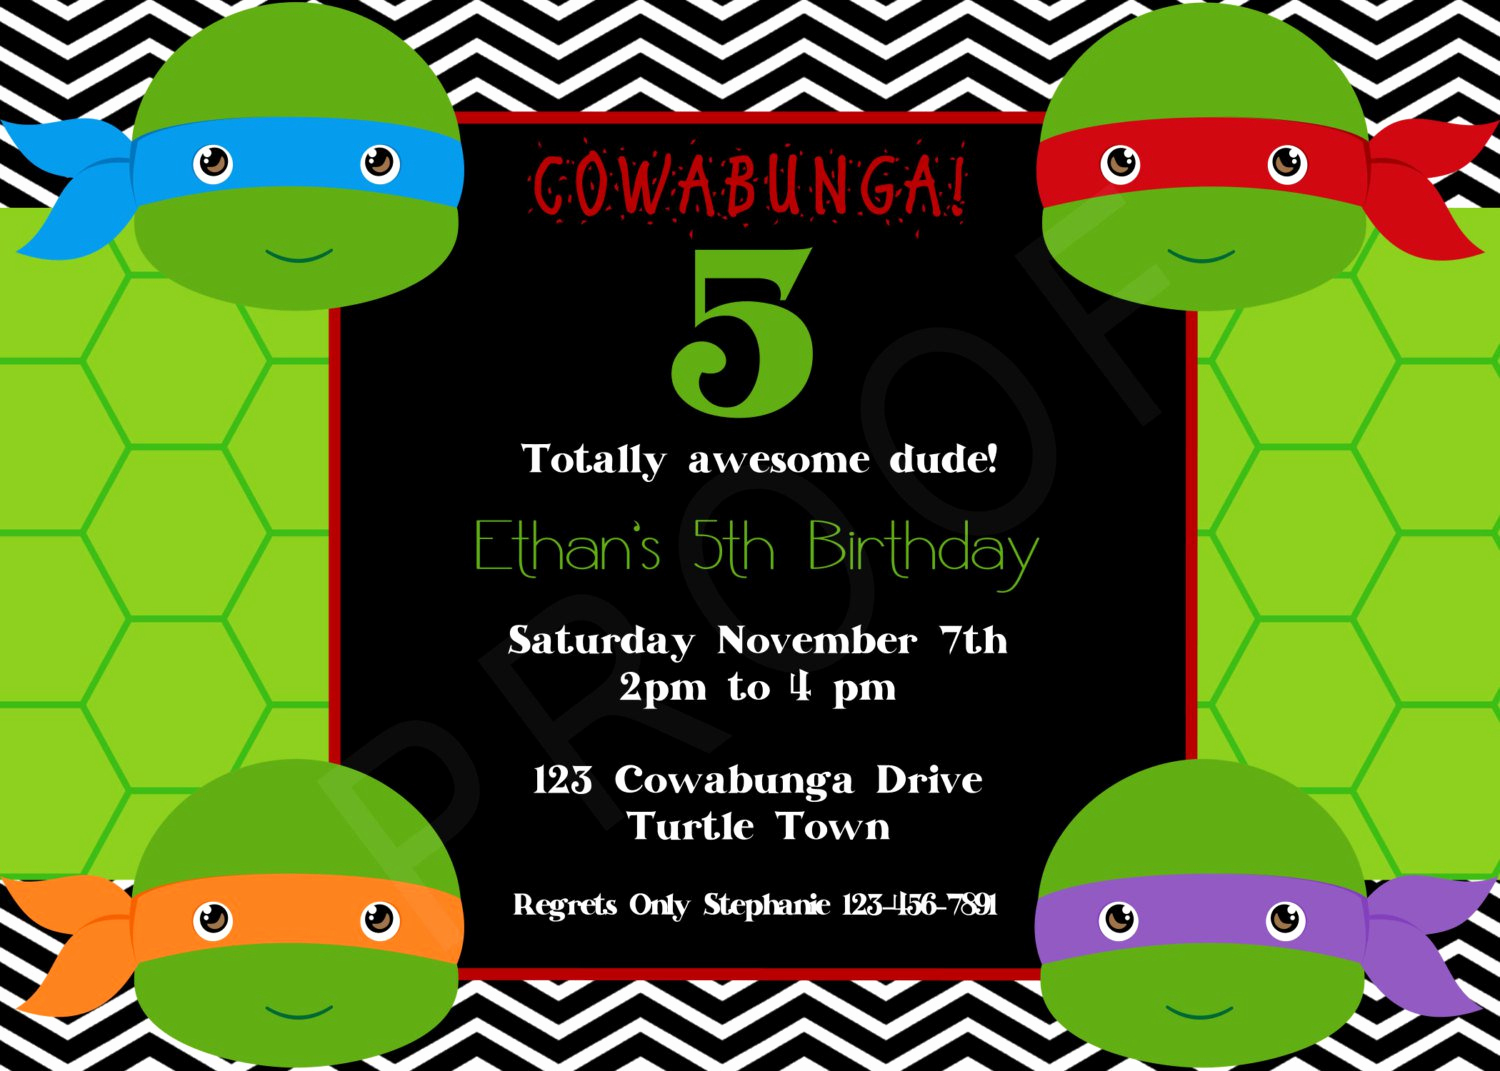 Ninja Turtles Birthday Invitation Luxury Teenage Mutant Ninja Turtles Birthday Party Invitations Free